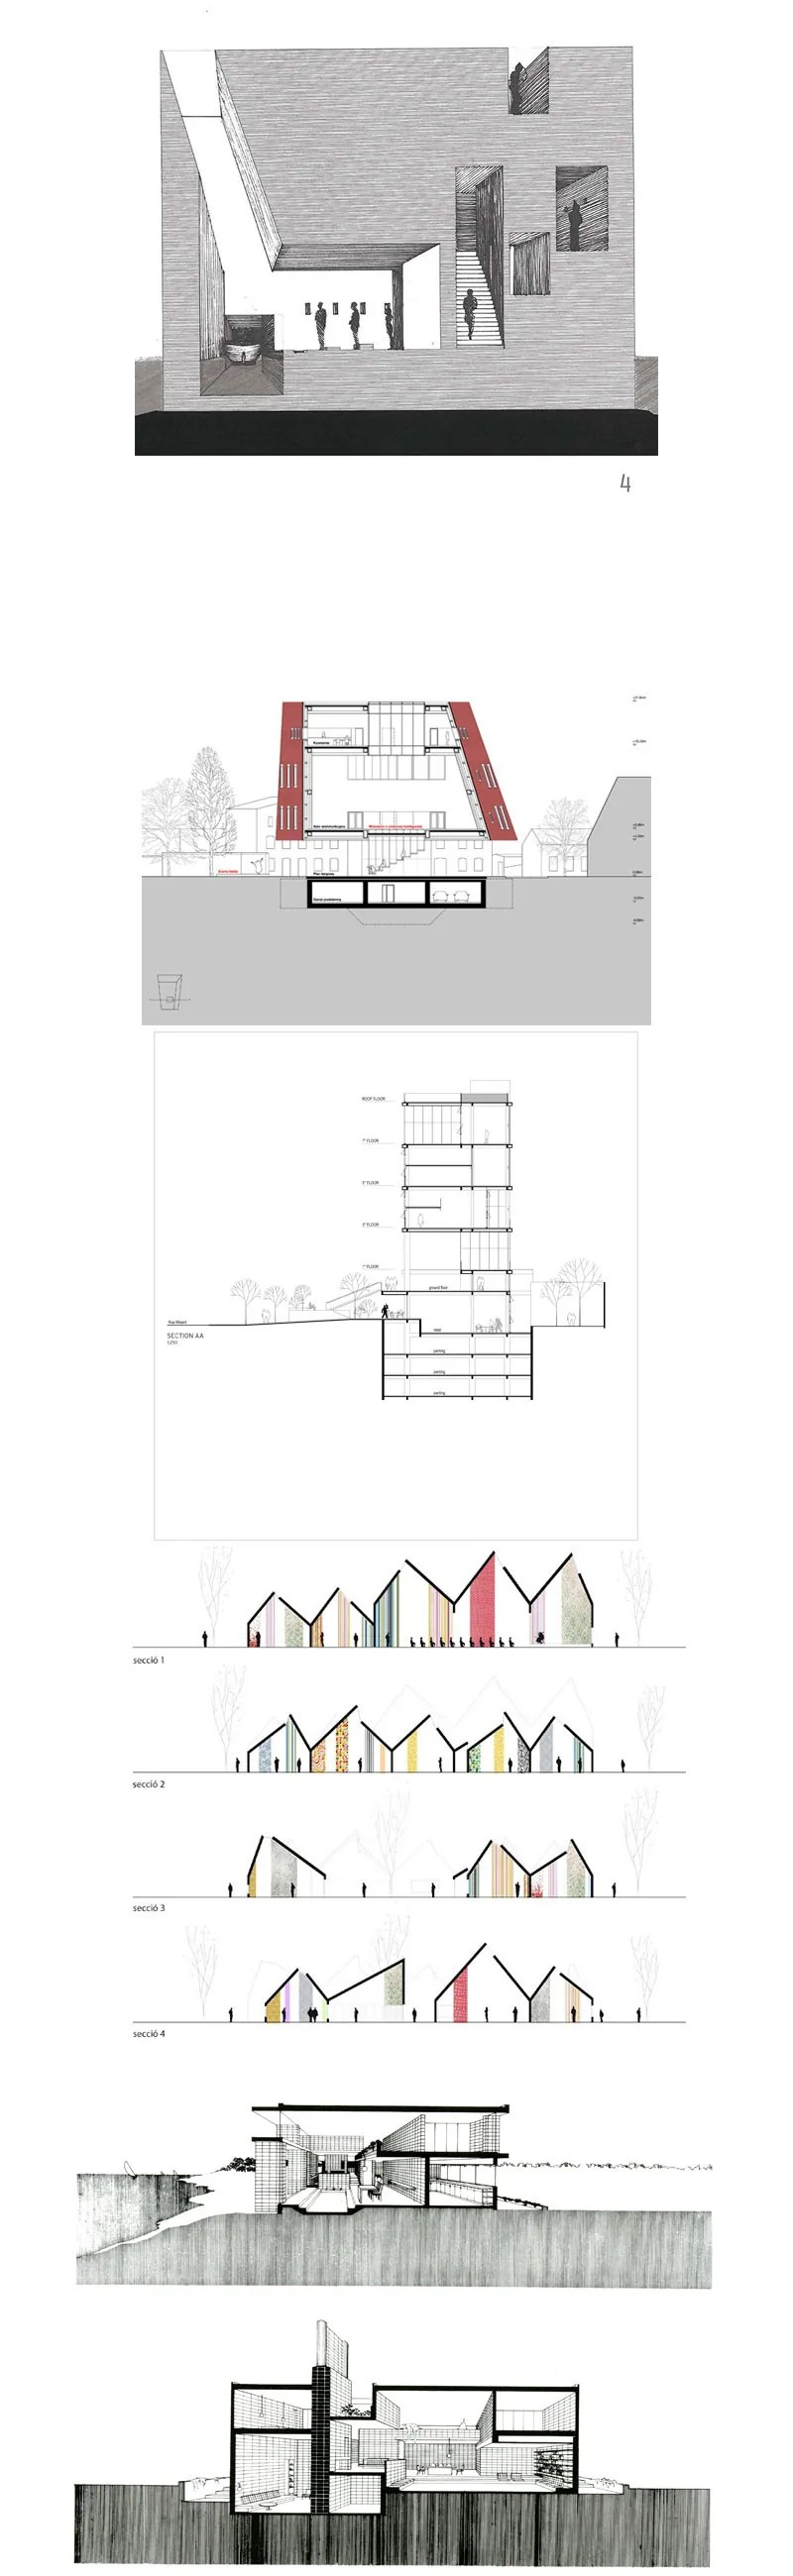 Architectural sections and elevations Gallery V.3